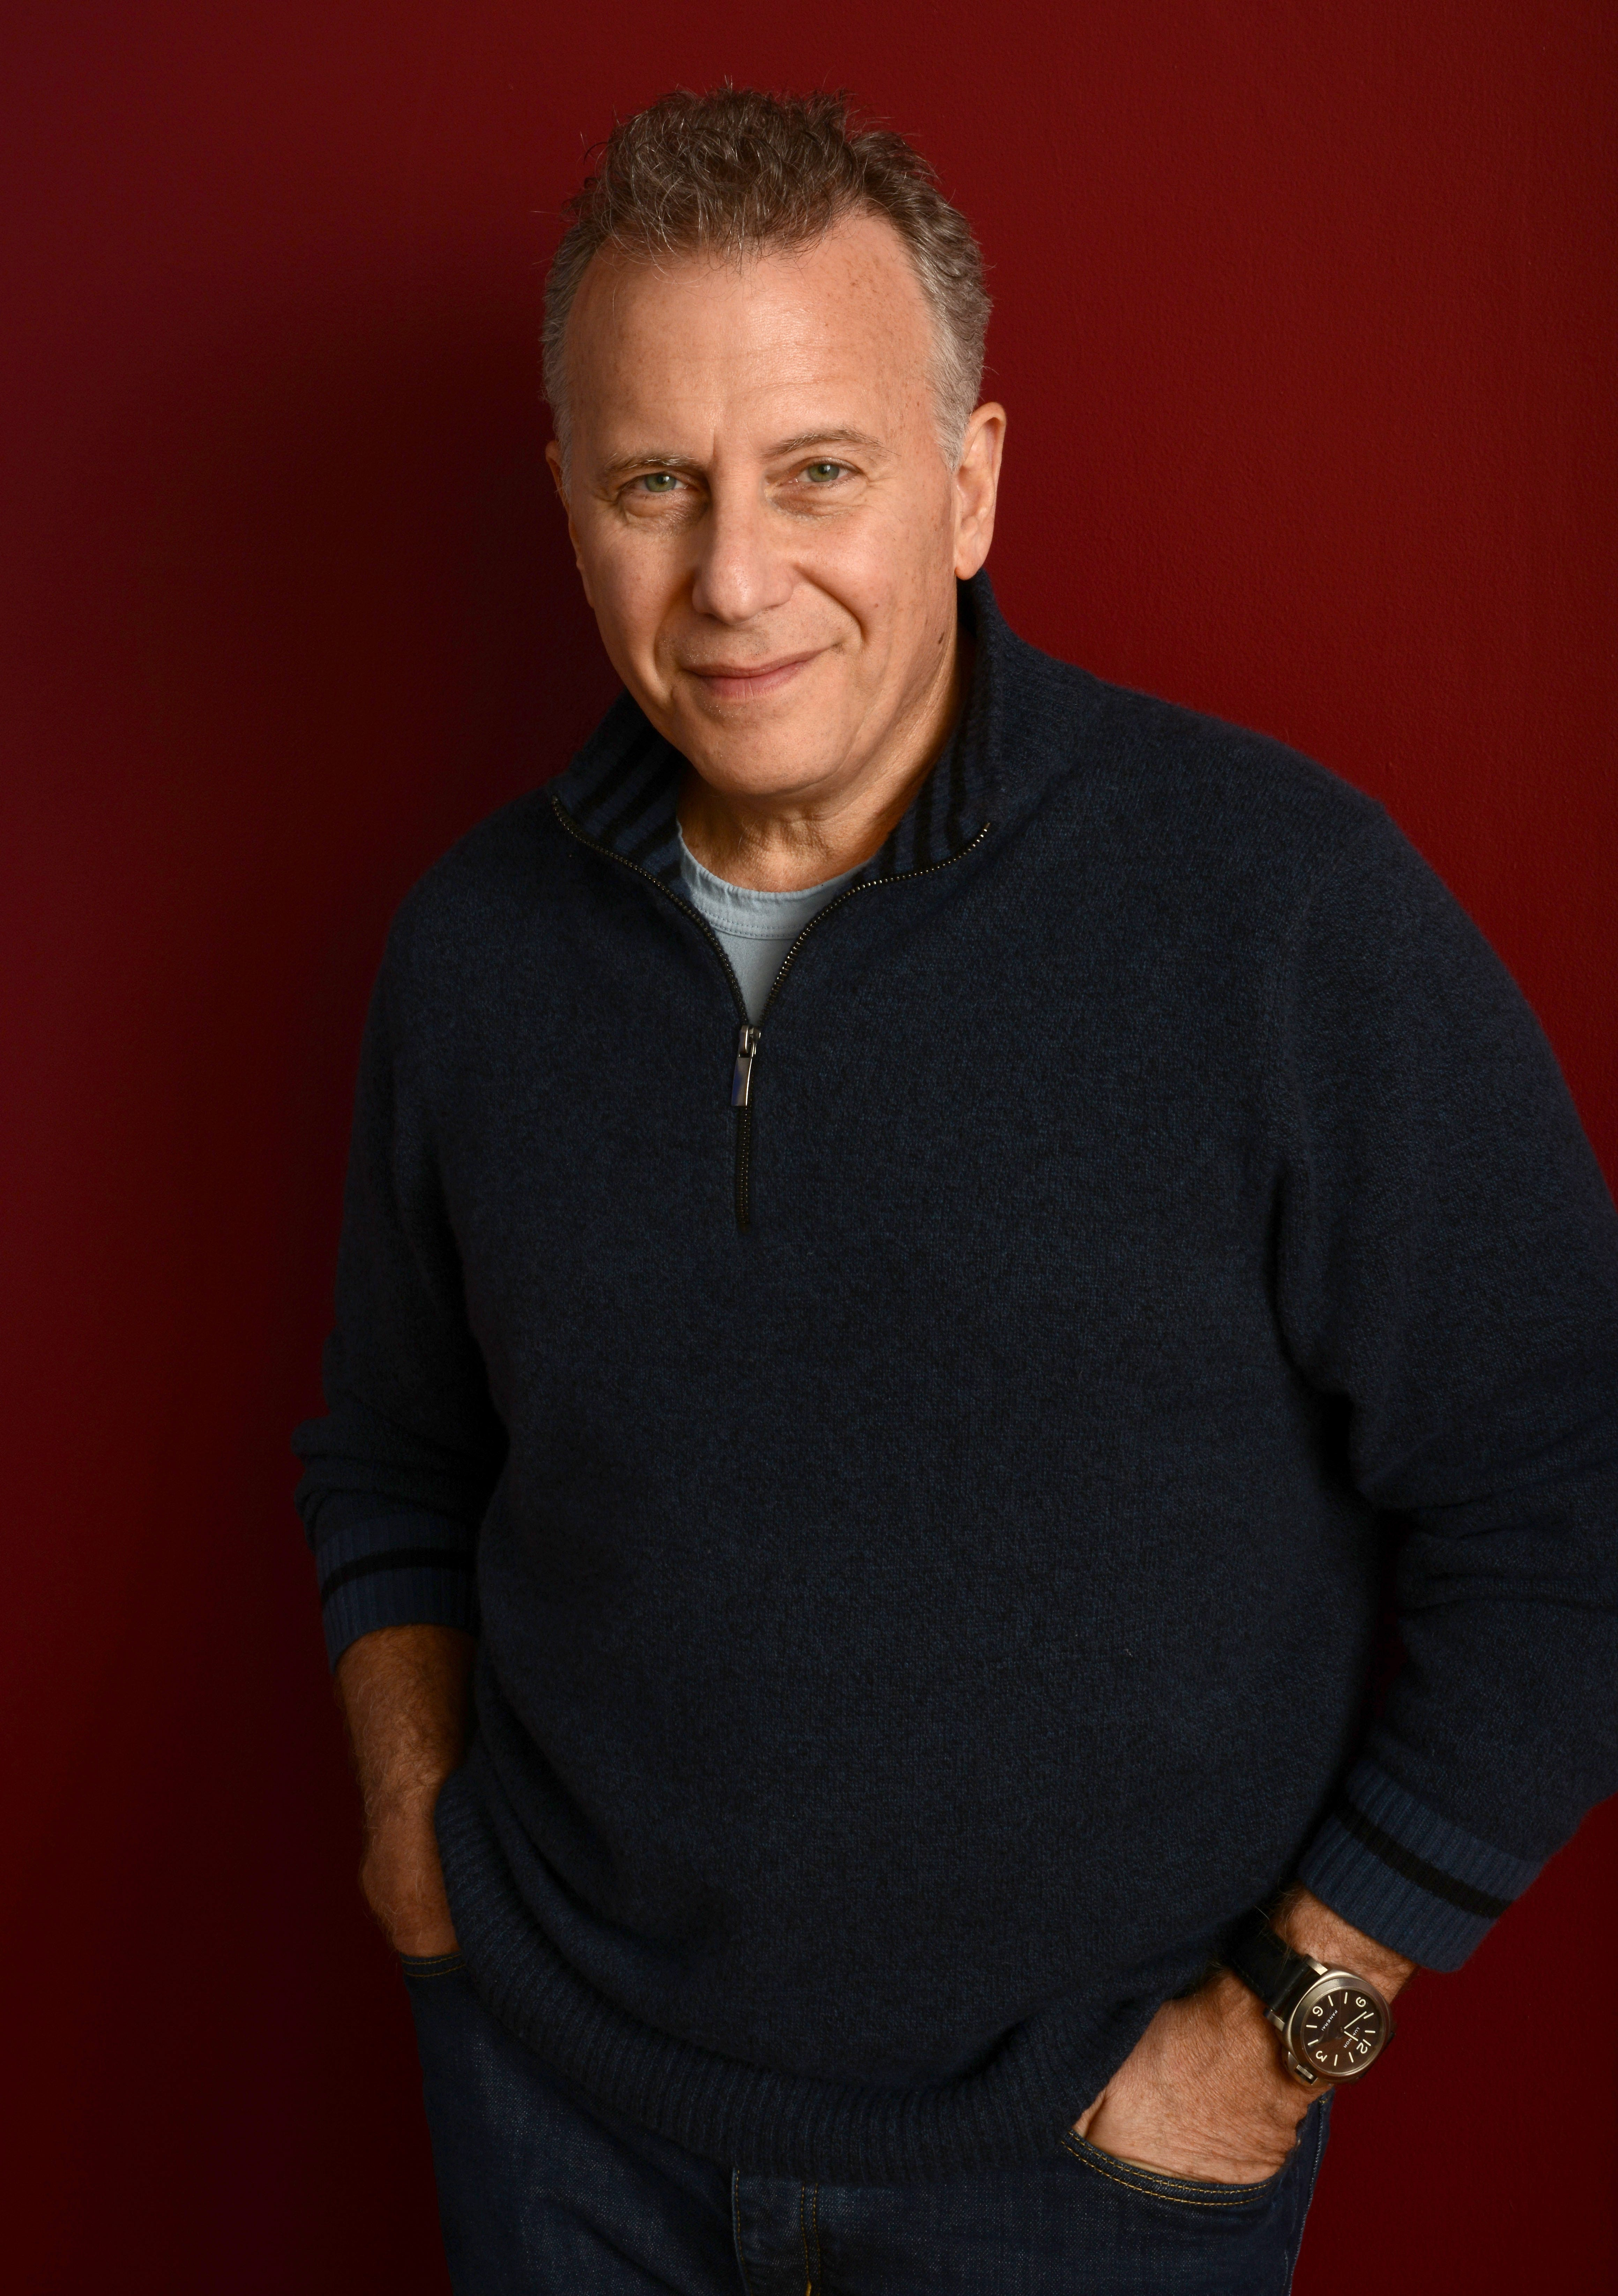 paul reiser stand uppaul reiser aliens, paul reiser book, paul reiser married, paul reiser and helen hunt, paul reiser out on a whim, paul reiser show, paul reiser, paul reiser couplehood, paul reiser mad about you, paul reiser beverly hills cop, paul reiser net worth, paul reiser imdb, paul reiser concussion, paul reiser stand up, paul reiser movies and tv shows, paul reiser whiplash, paul reiser tour, paul reiser age, paul reiser twitter, paul reiser email